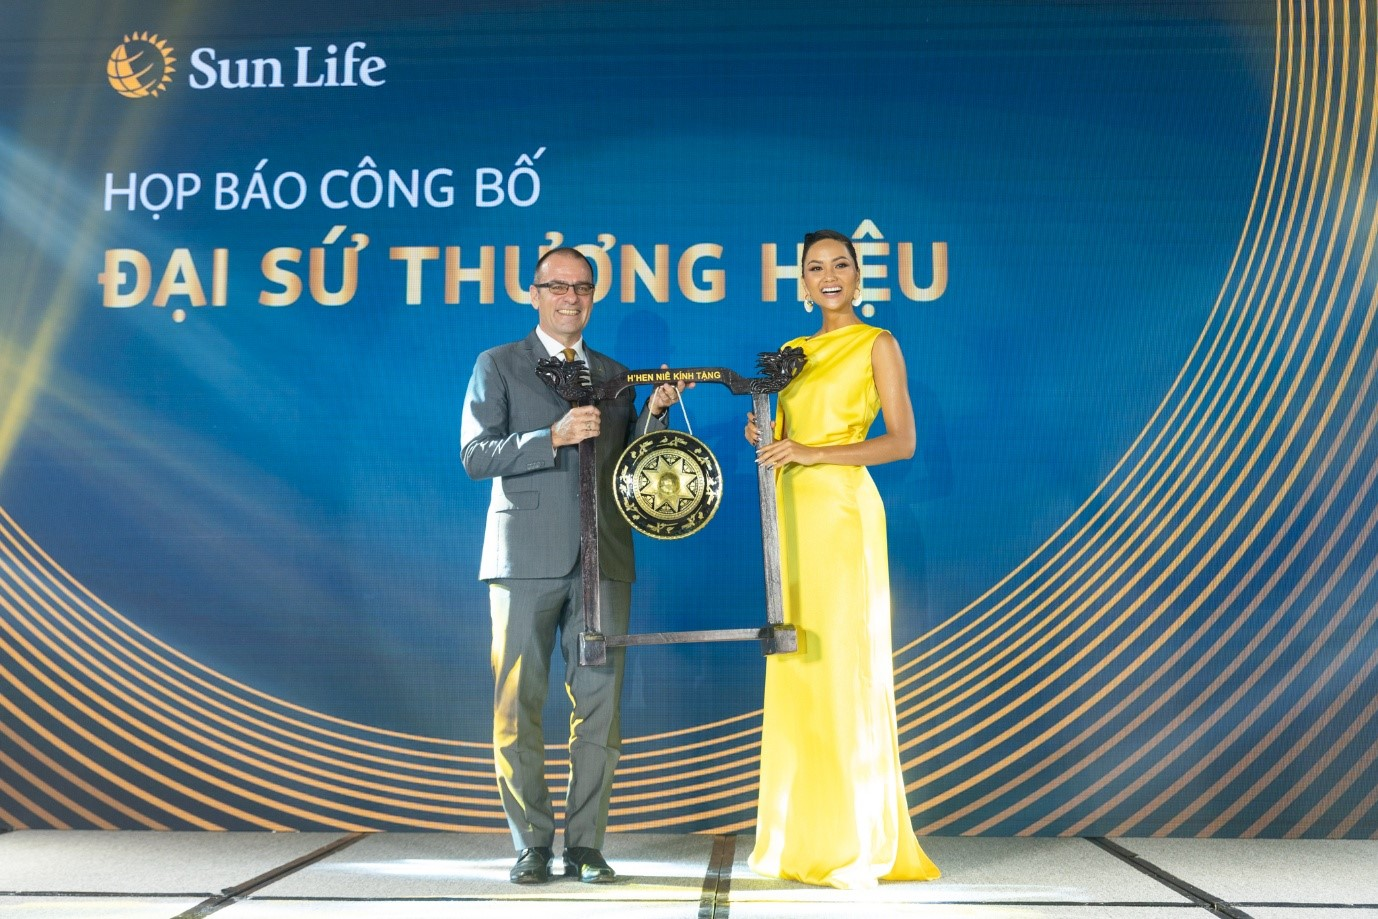 'H'Hen Nie inspires us with her lifestyle': Sun Life Vietnam CEO